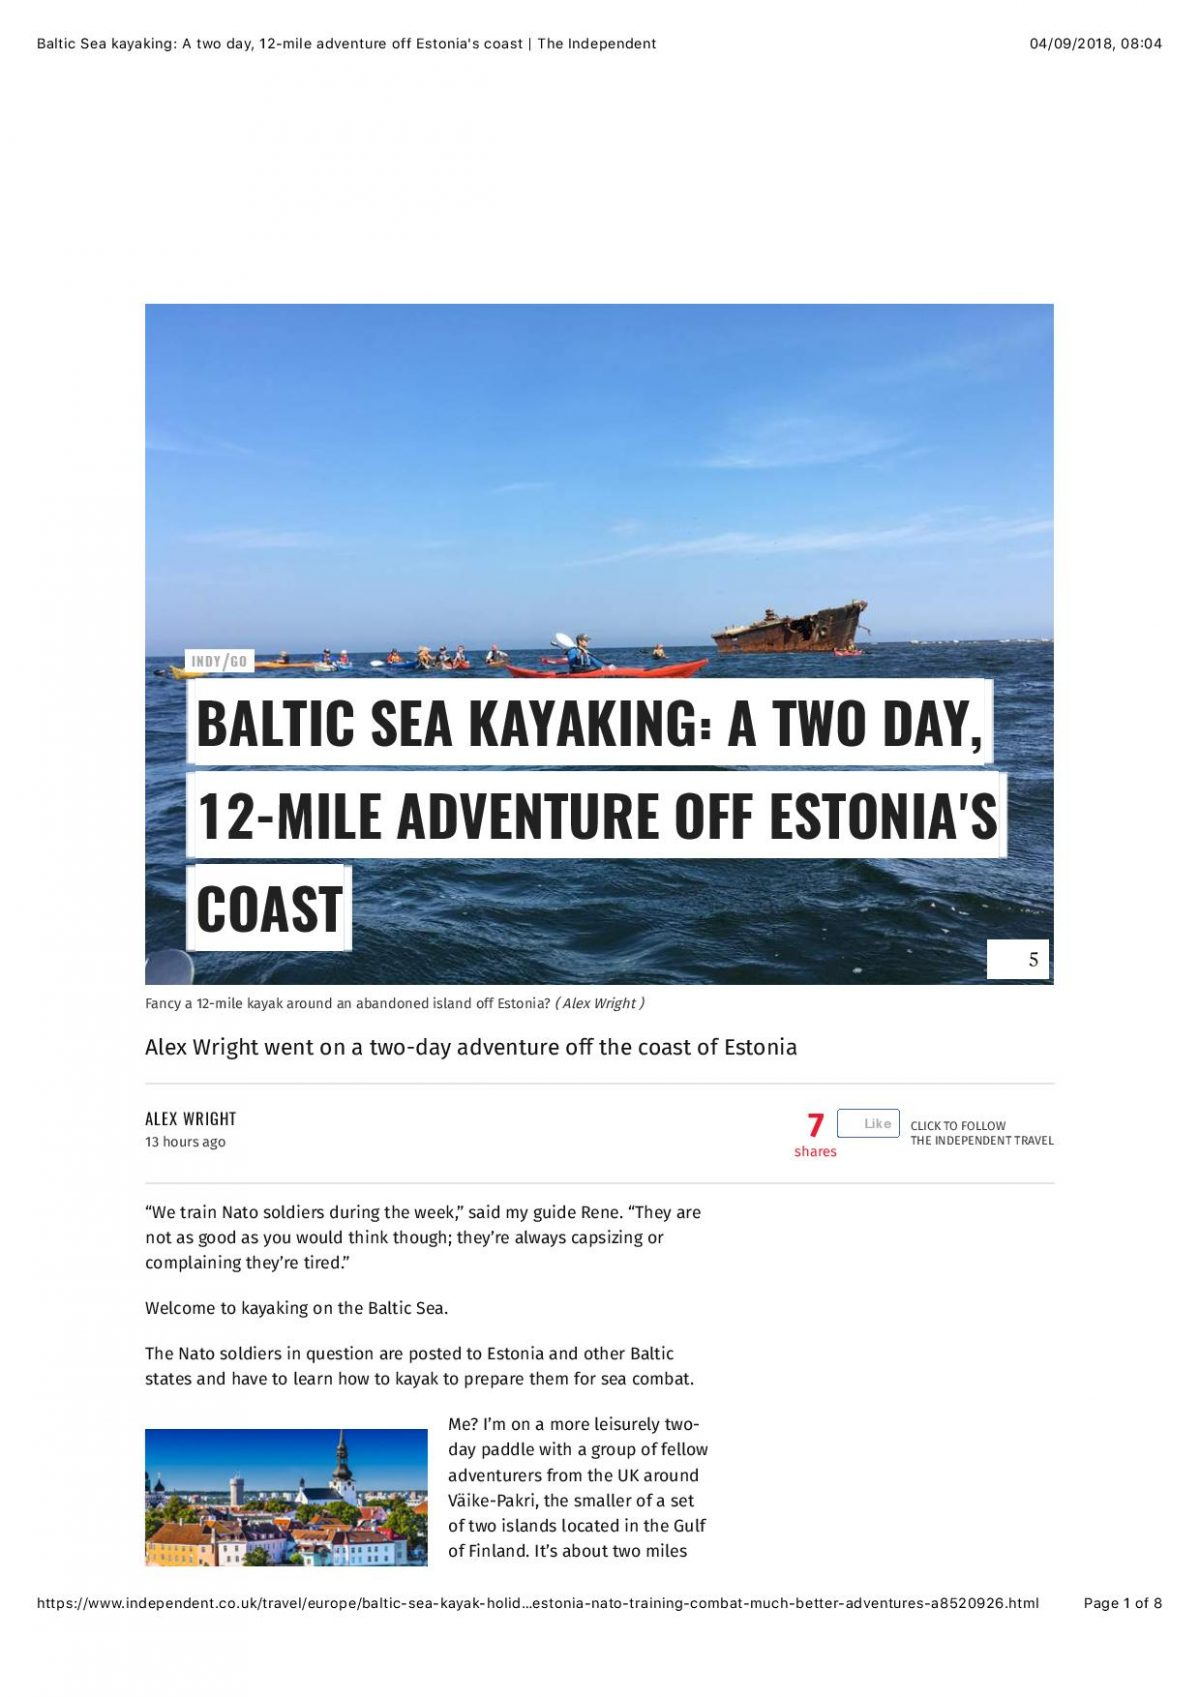 baltic-sea-kayaking-a-two-day-12-mile-adventure-off-estonia-s-coast-page-001